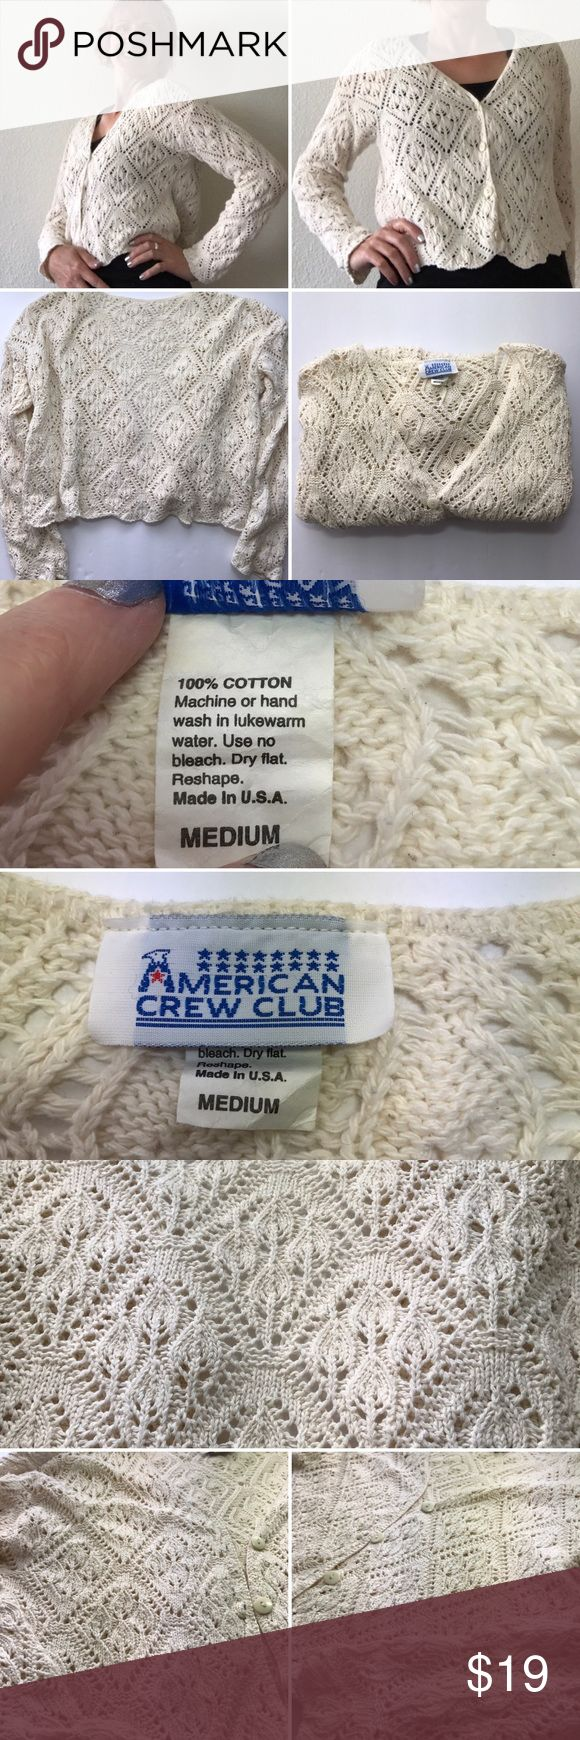 American crew club cardigan Beautiful cream colored crocheted cardigan I American crew club. Please see all photos and tags for size, materials and washing instructions.🚭 American crew club Sweaters Cardigans